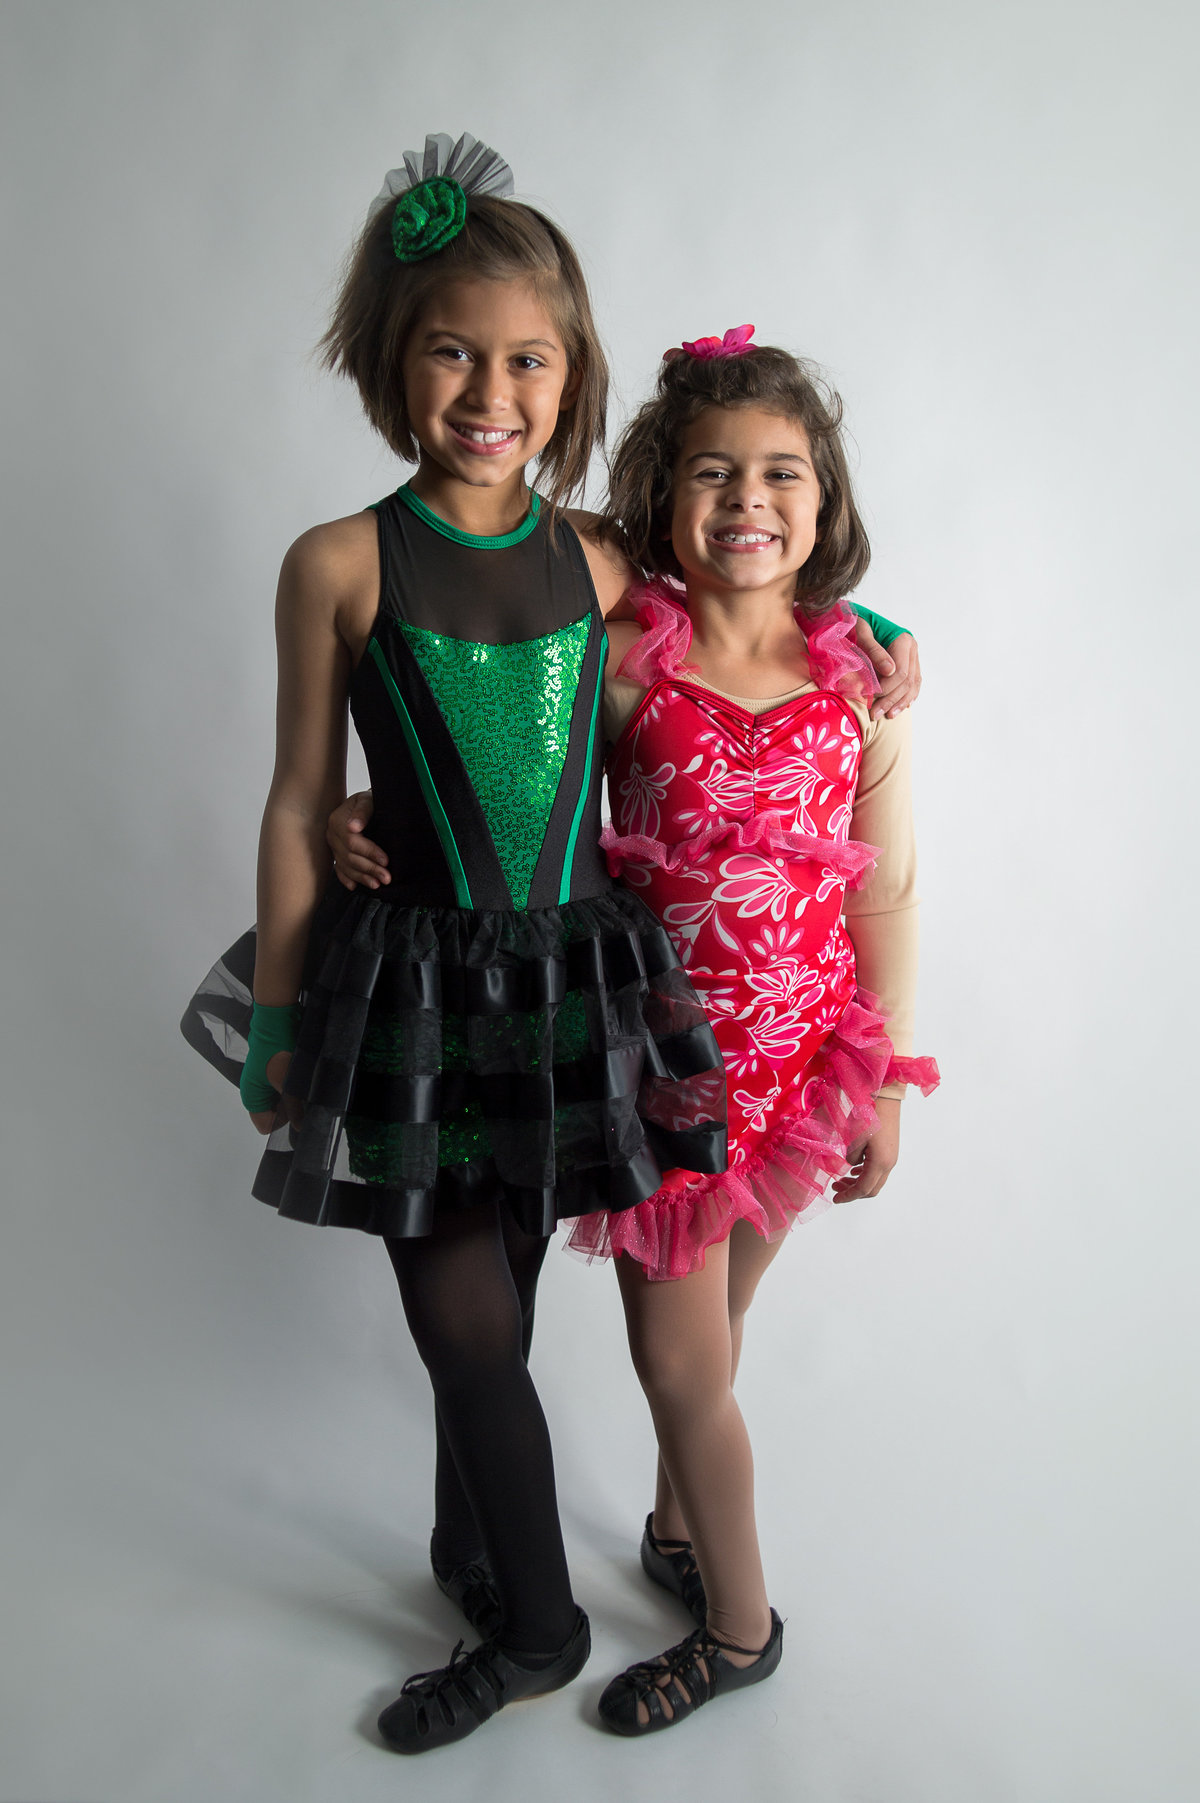 20171210_Gianna&Toni_IrishDancePortraits-10